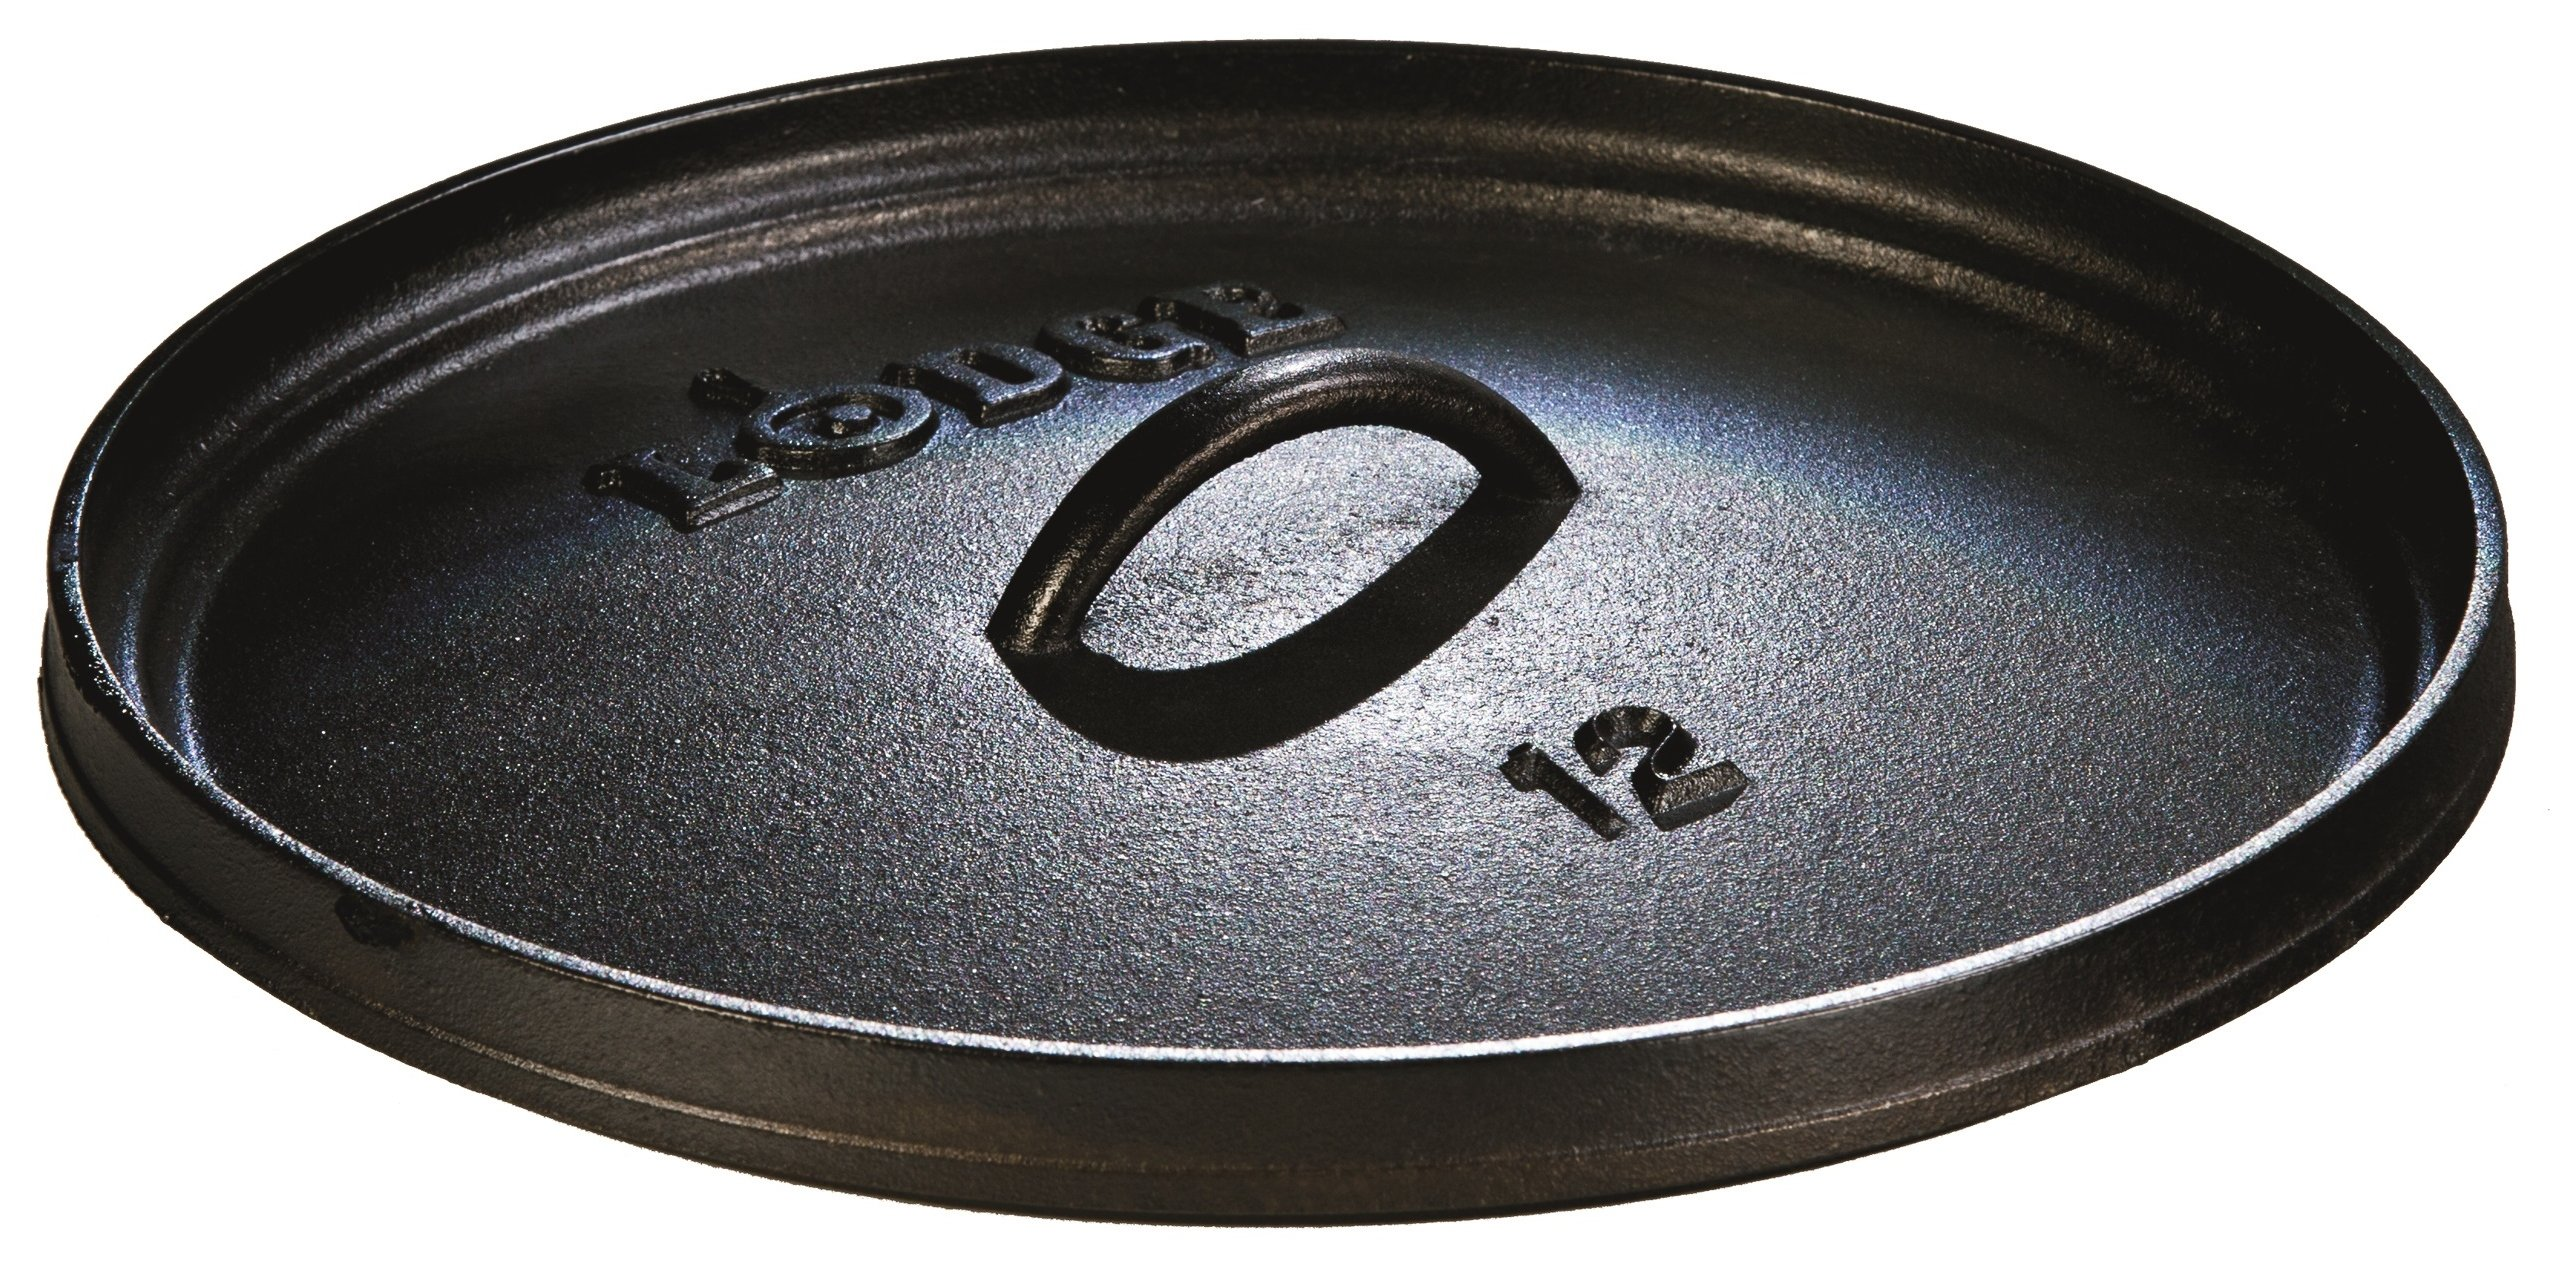 Lodge 8 Quart Camp Dutch Oven. 12 Inch Pre Seasoned Cast Iron Pot and Lid with Handle for Camp Cooking by Lodge